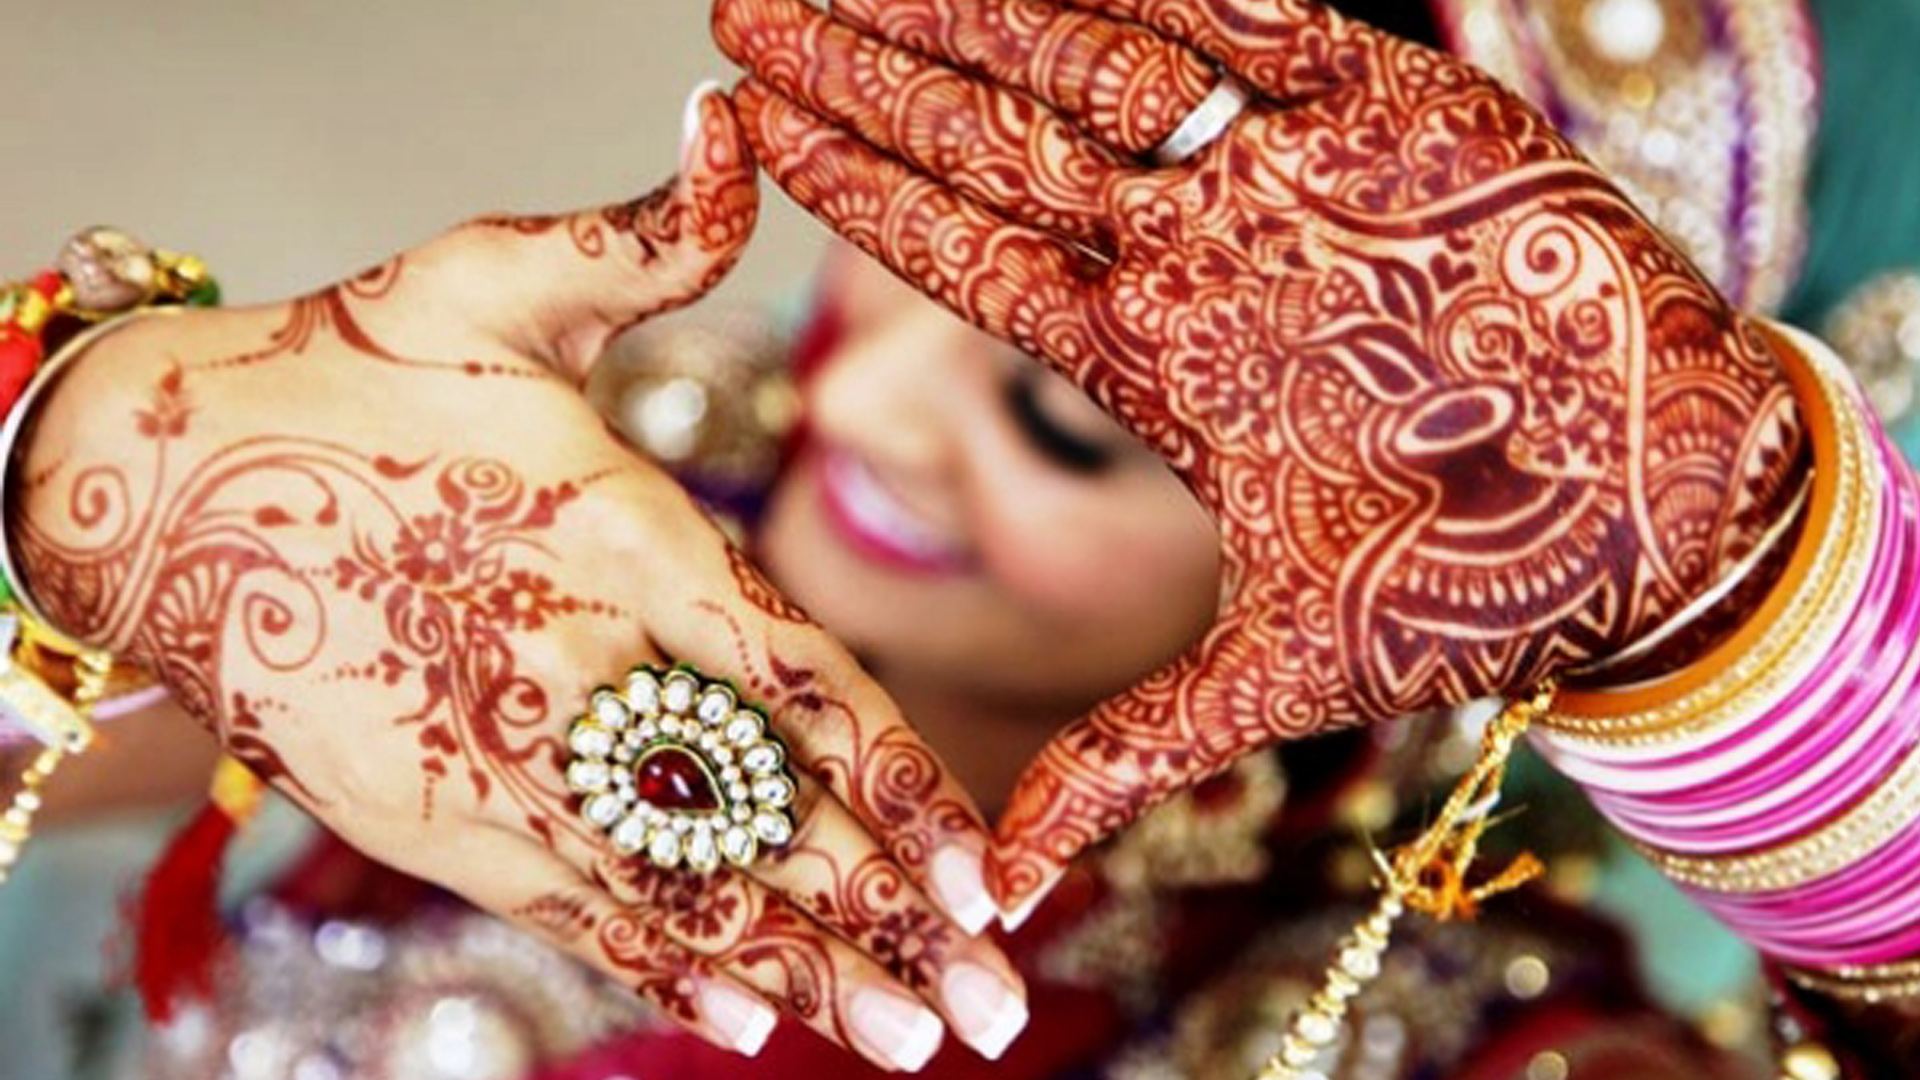 Consider These 4 Tips When Choosing An Indian Wedding Venue